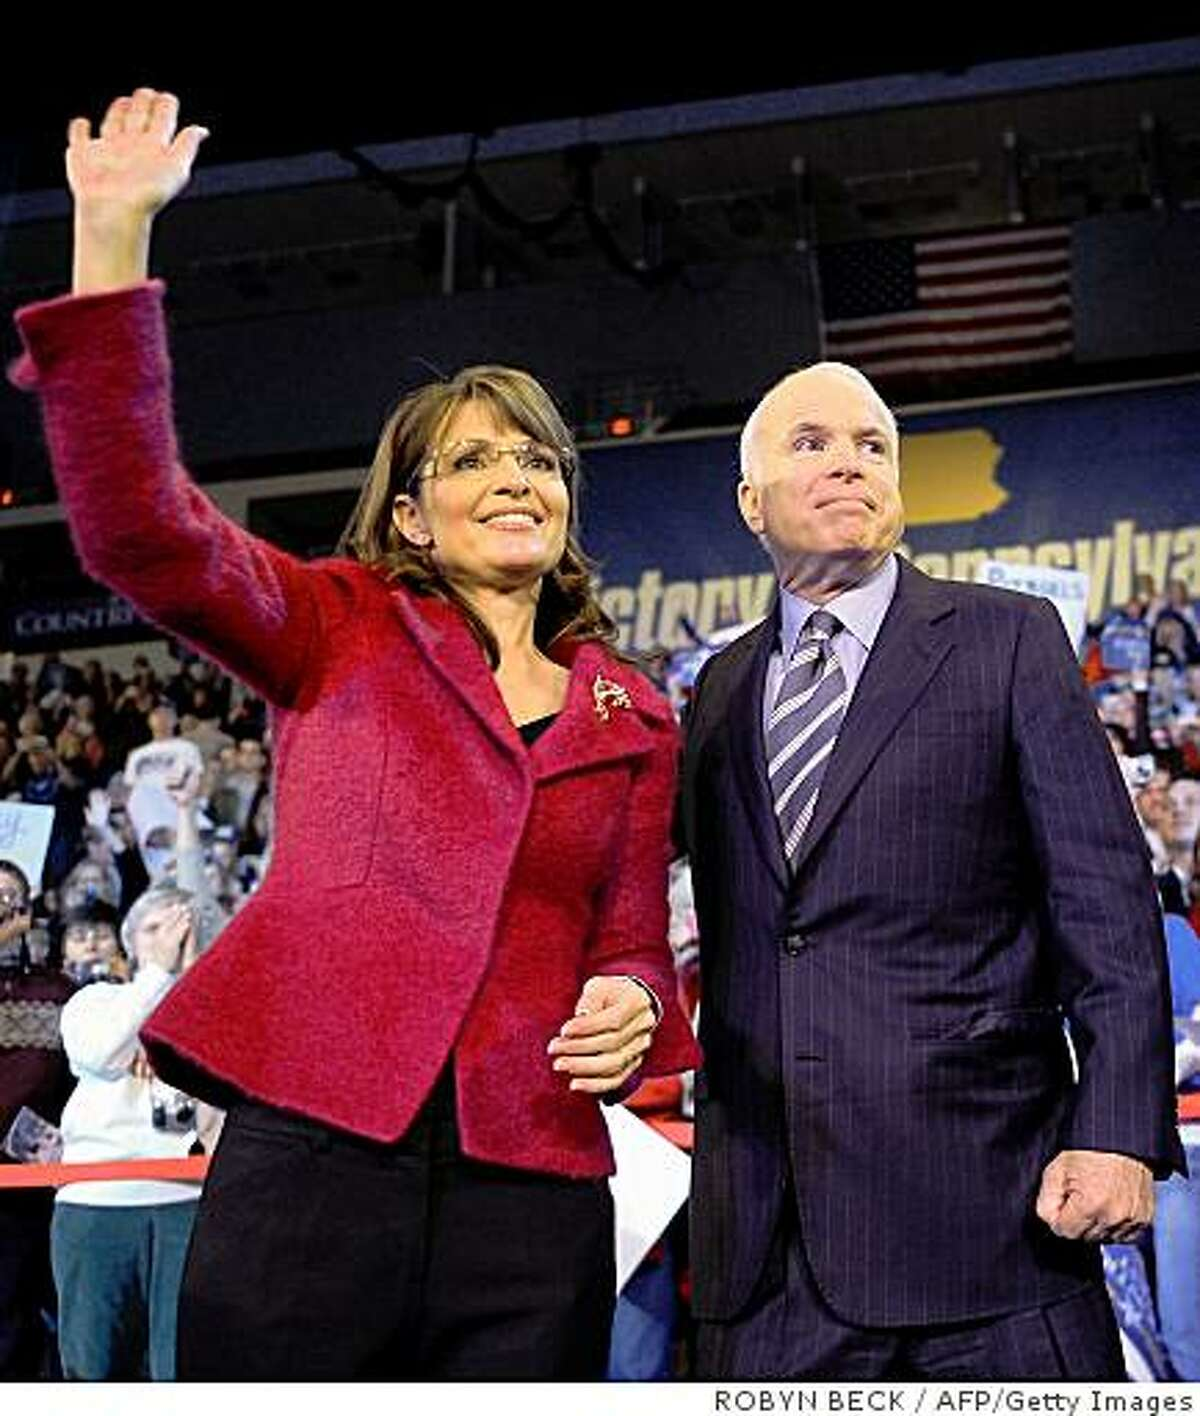 (files) Republican presidential candidate Arizona Sen. John McCain and his vice presidential candidate Alaska Gov. Sarah Palin wave at a campaign rally at Giant Center in Hershey, Pennsylvania on October 28, 2008. US media is reporting July 3, 2009 that Palin has announced her resignation as Alaska governor, and that she will not seek a second term. FILES/AFP PHOTO/Robyn BECK (Photo credit should read ROBYN BECK/AFP/Getty Images)